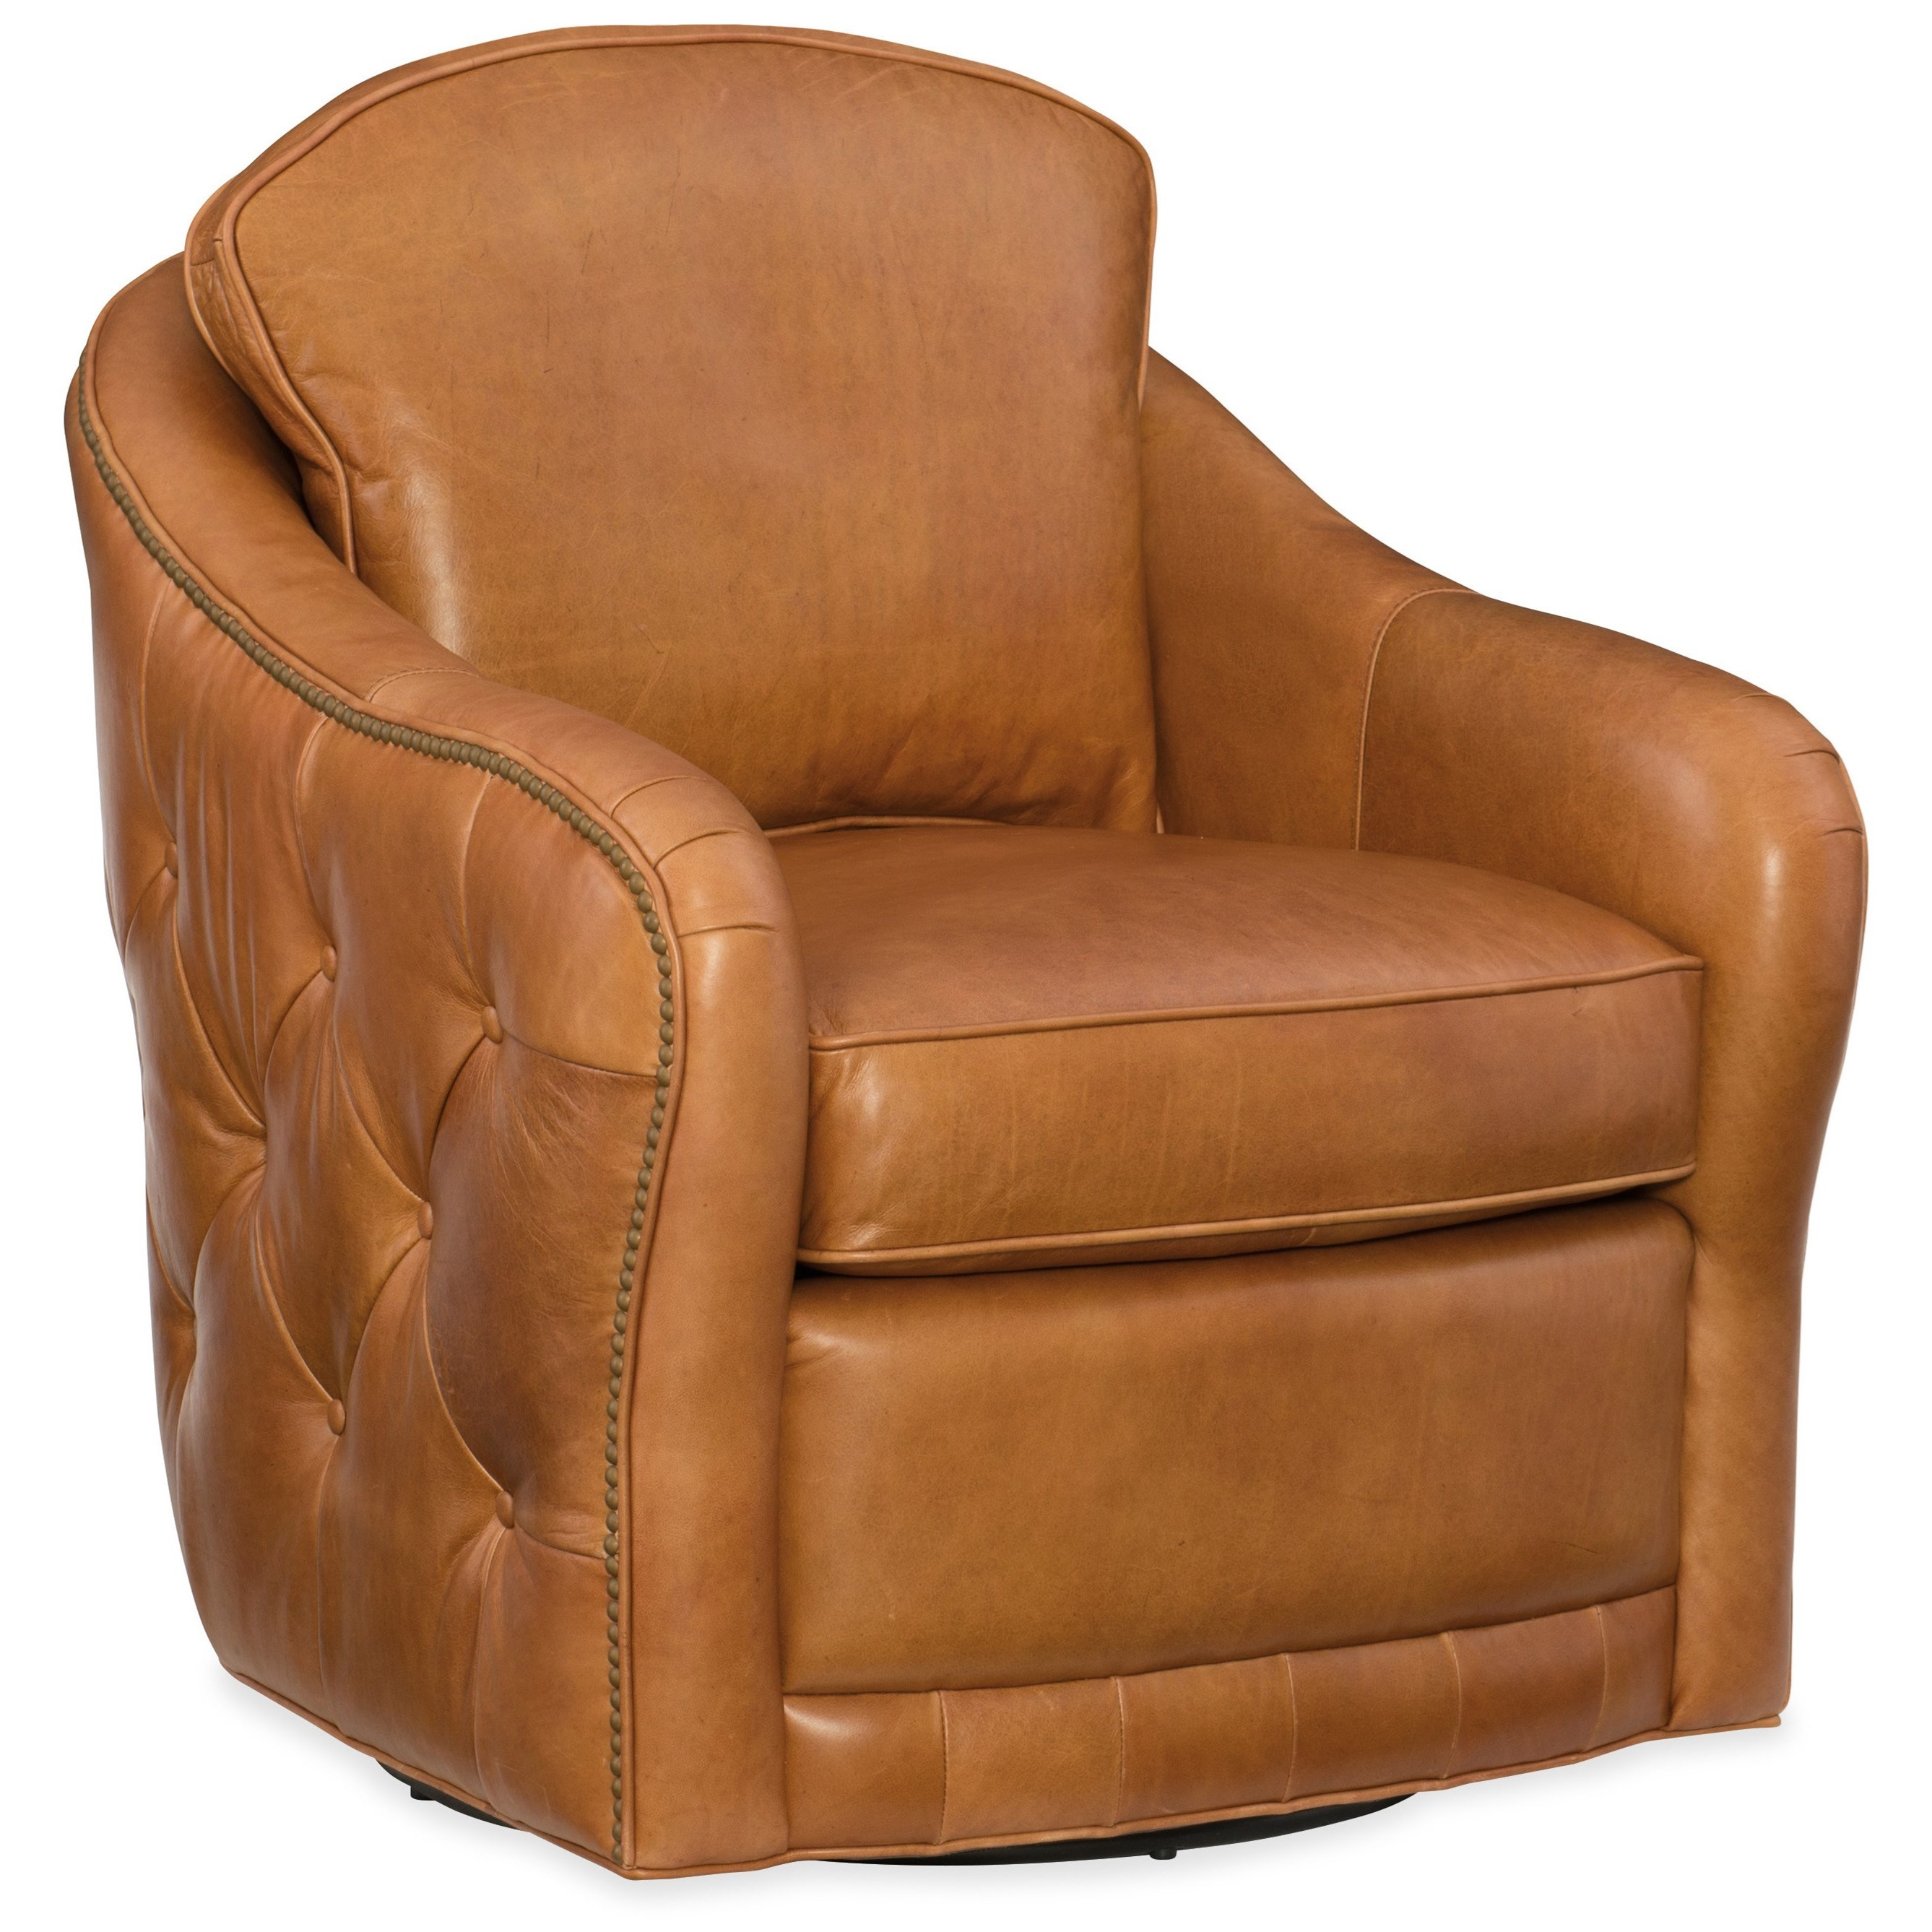 Club Chairs Hilton Swivel Club Chair by Hooker Furniture at Miller Waldrop Furniture and Decor